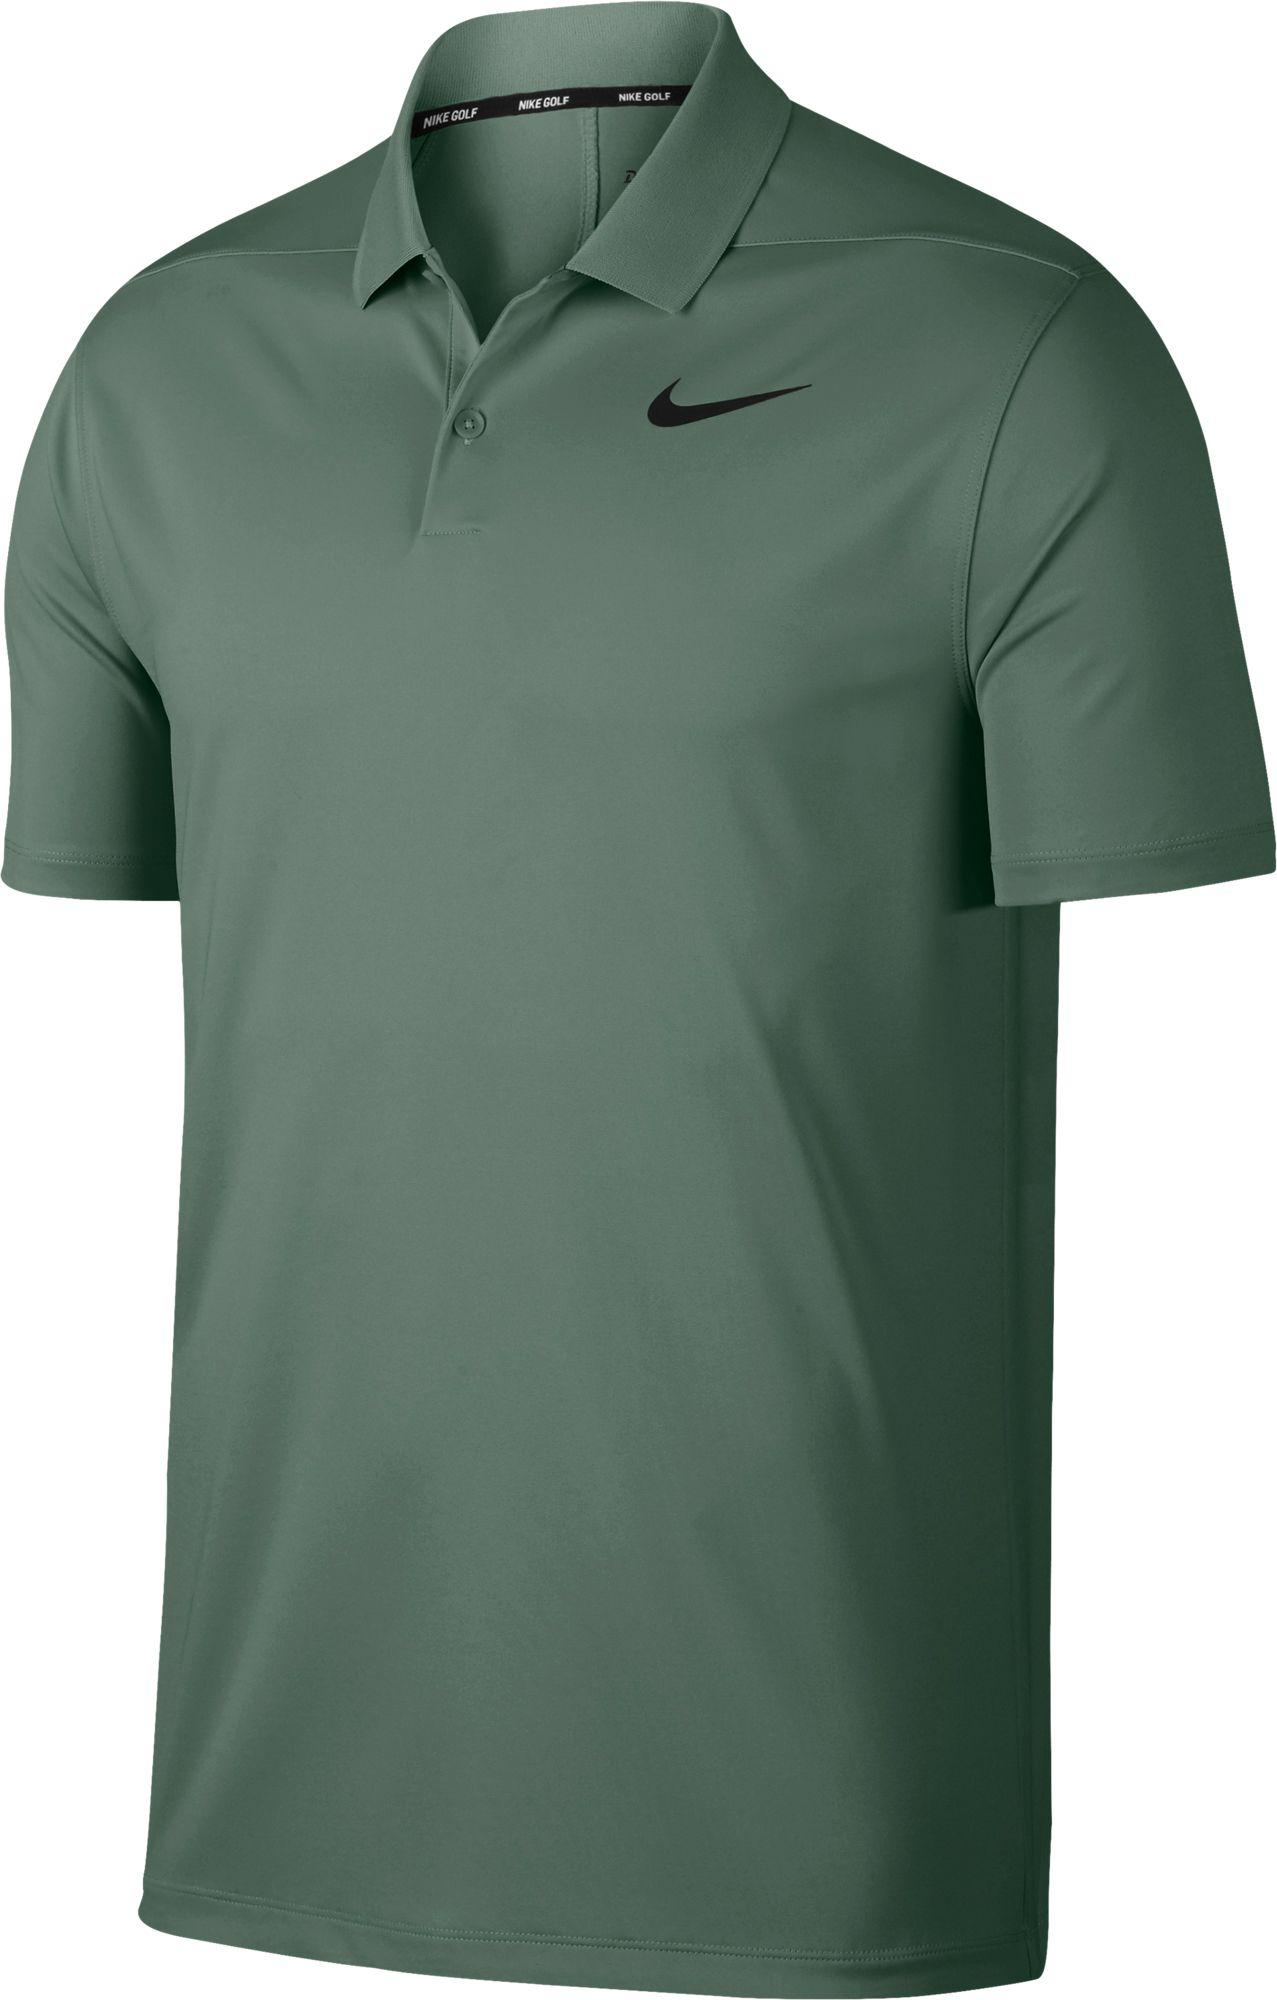 dea695bdf Nike Solid Dry Victory Golf Polo in Green for Men - Lyst